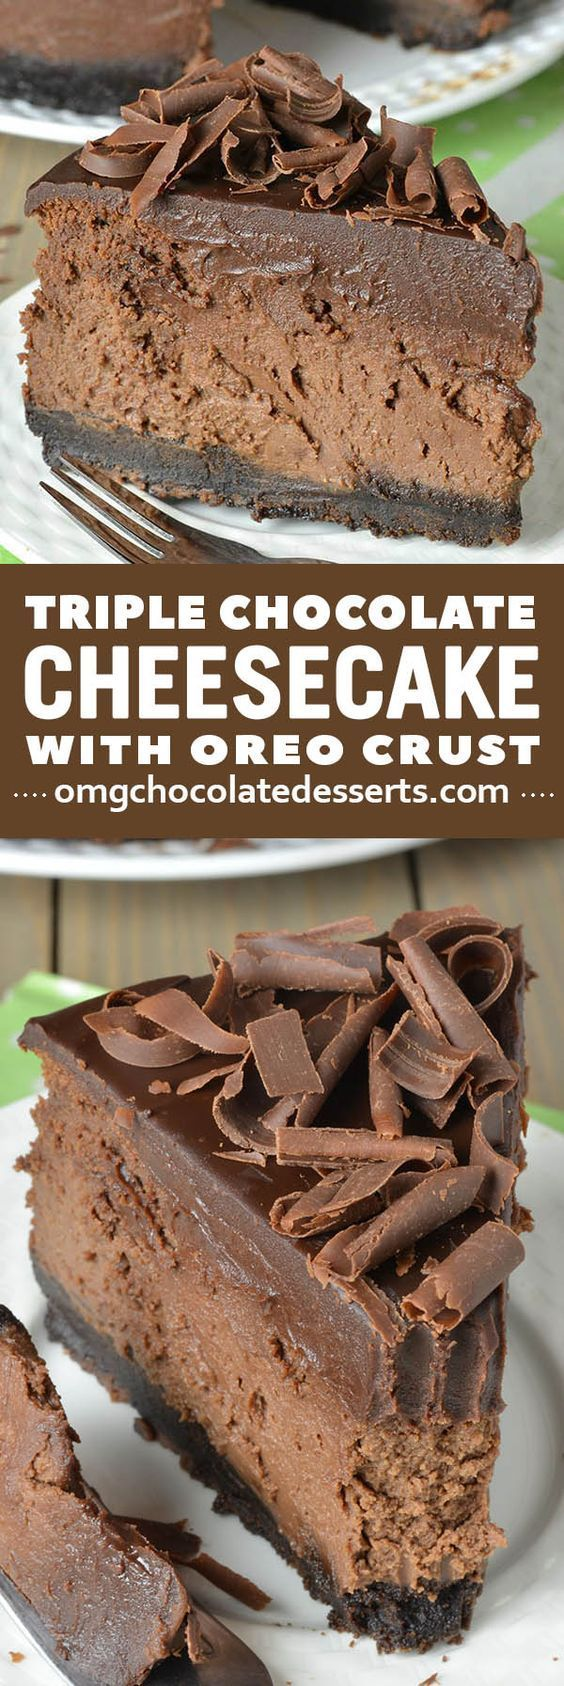 It doesn't get much better than Triple Chocolate Cheesecake with an OREO crust! Best cheesecake recipe ever!